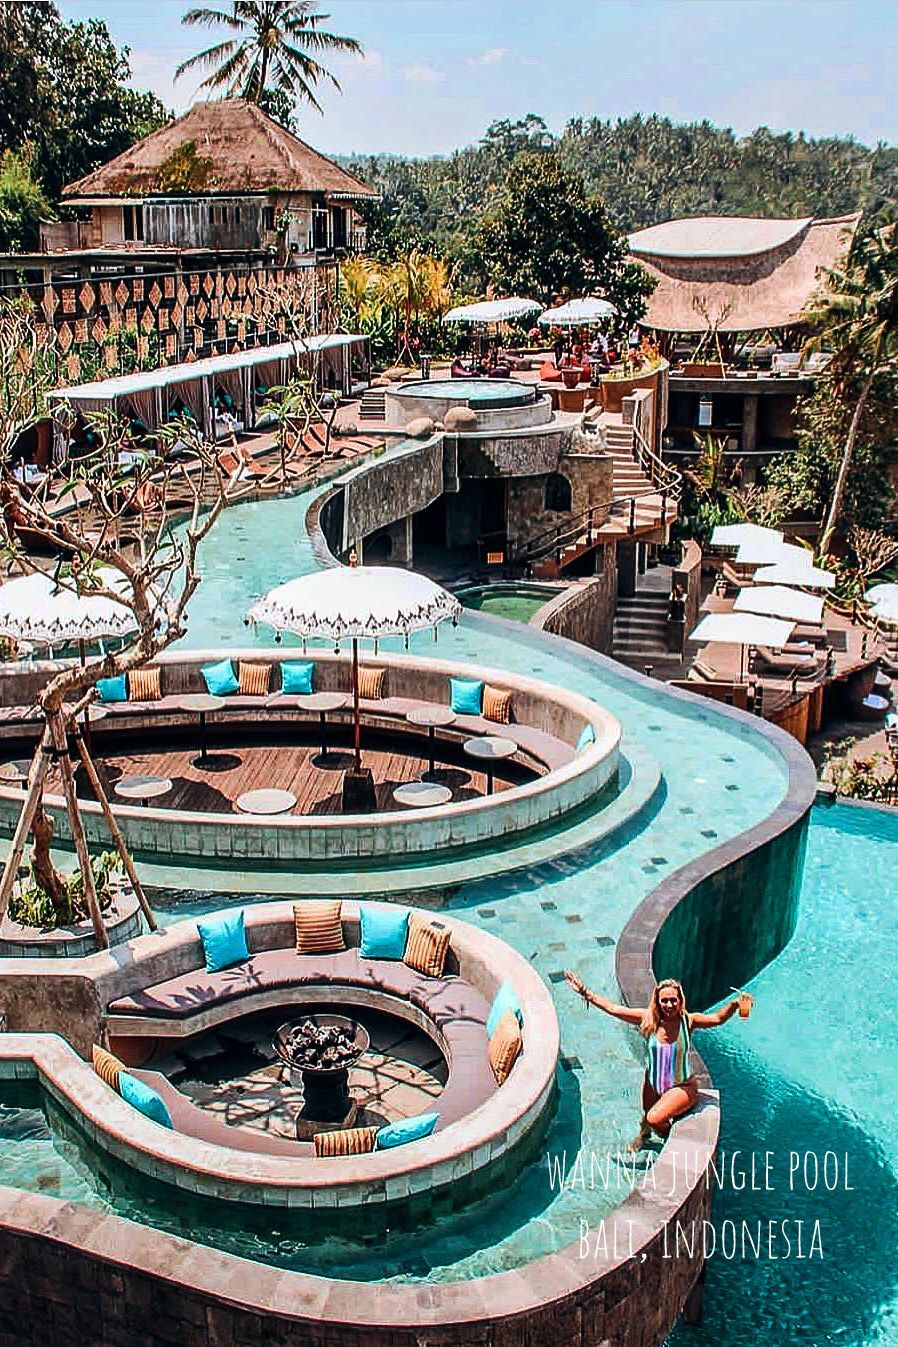 Wanna Jungle Pool And Bar In Bali Indonesia The Kayon Jungle Resort Is Designed For Traveller Who Looking For A Luxury Jungle Resort Resort Pools Bali Resort